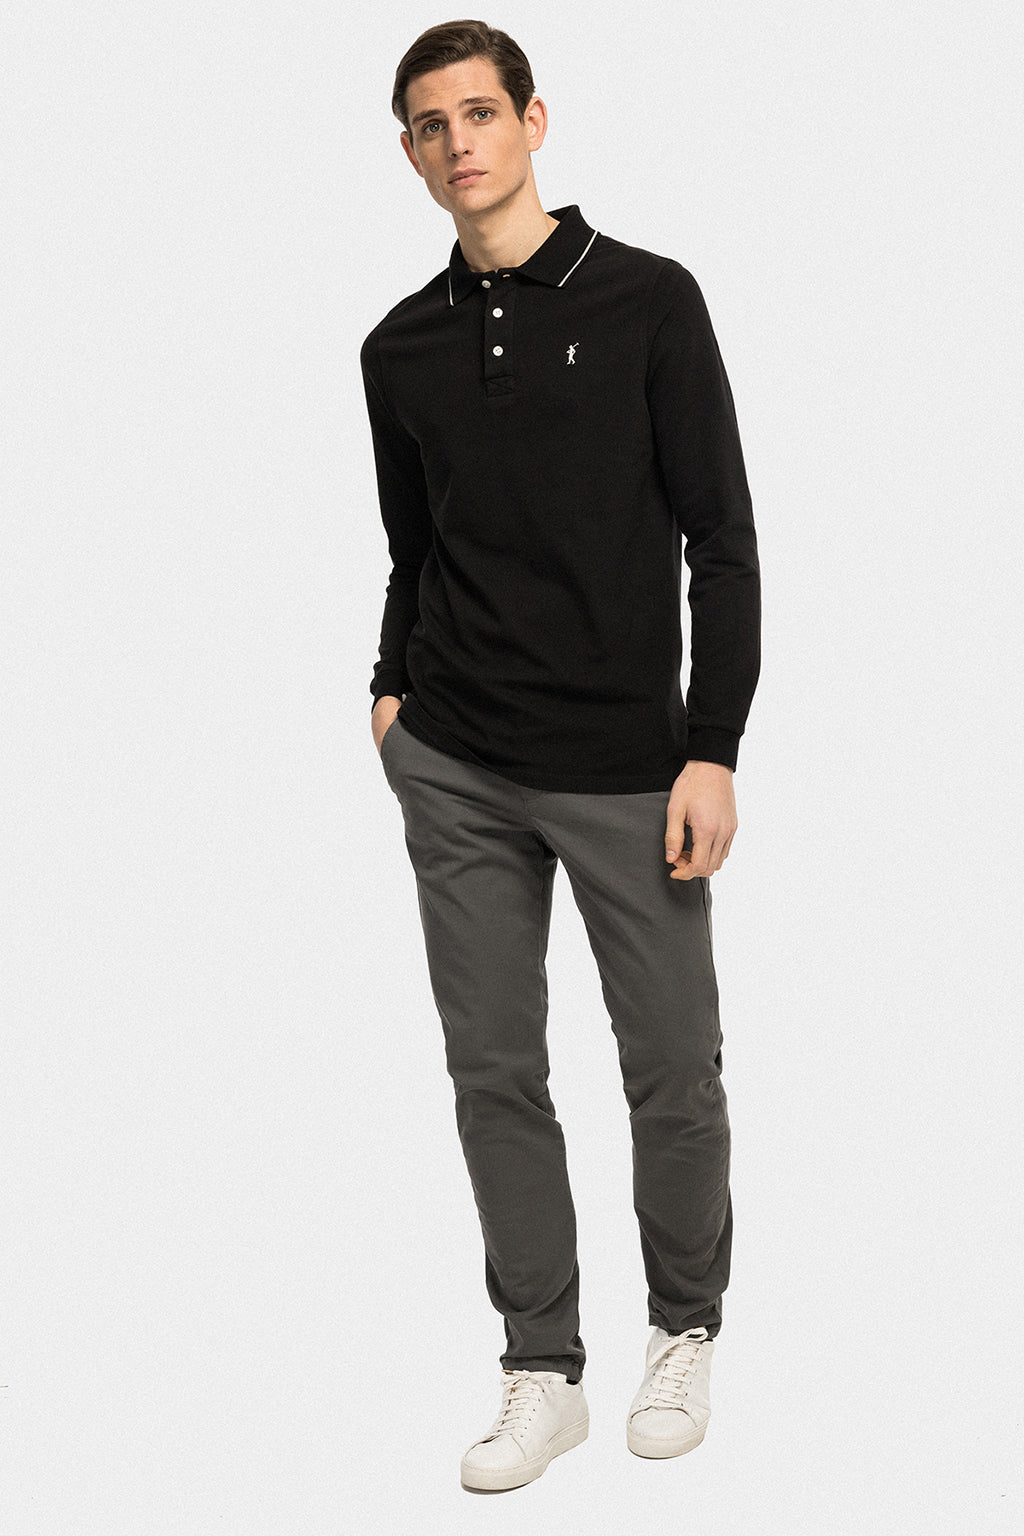 Black long sleeve polo shirt with detail on collar